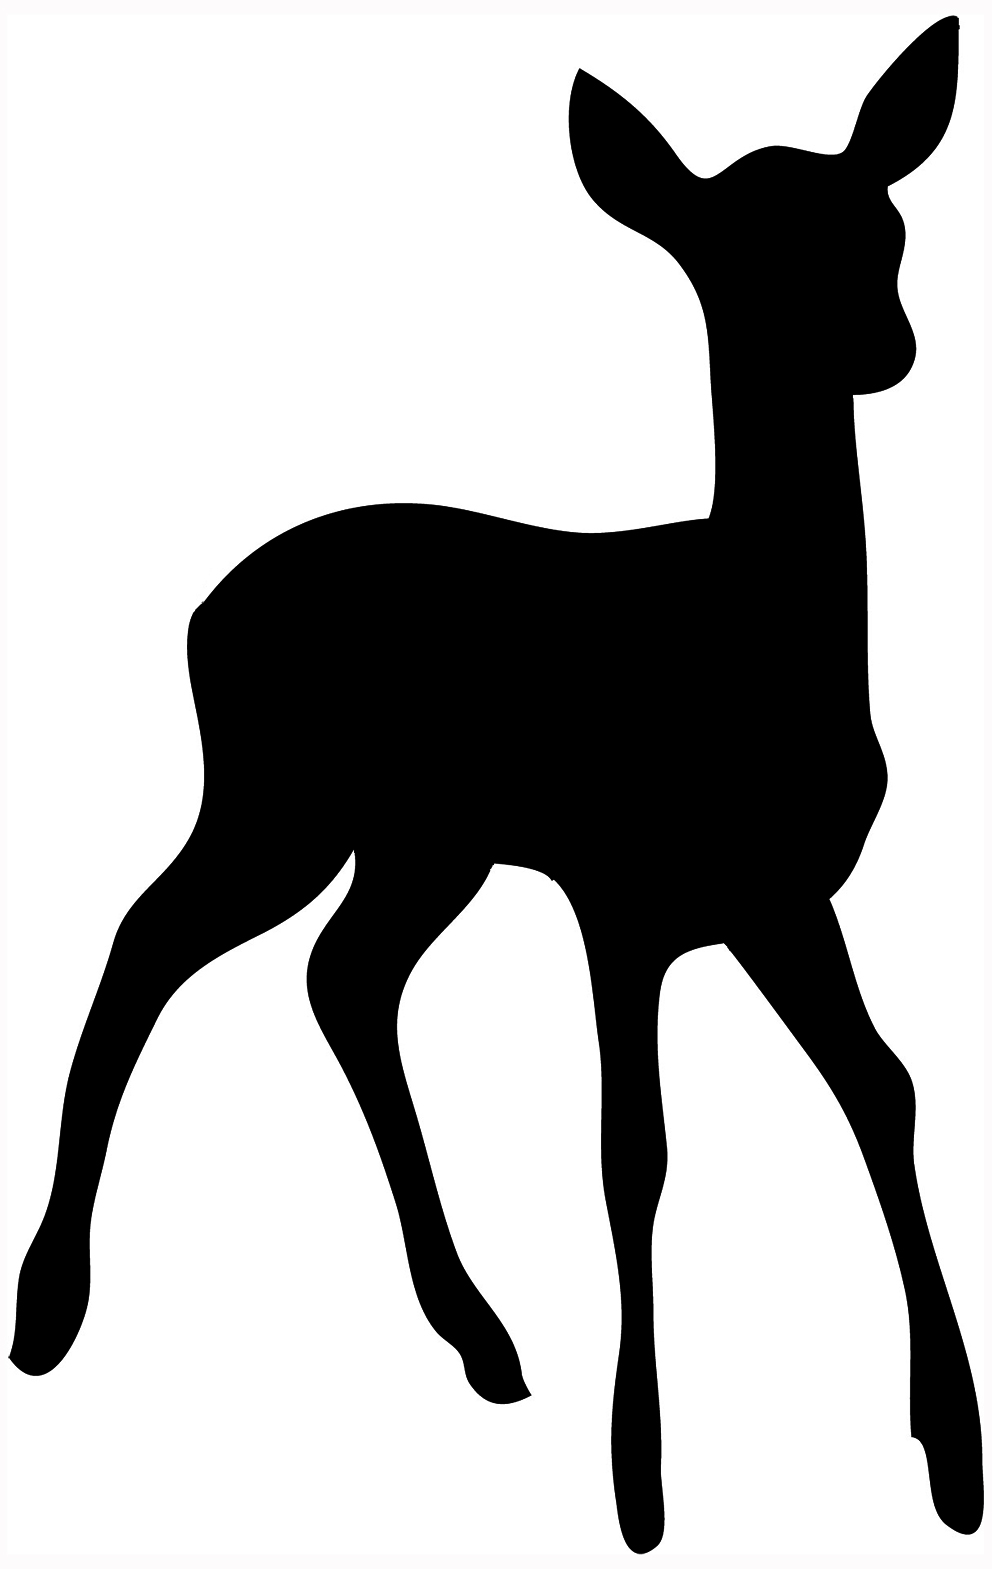 Simple Animal Silhouette - ClipArt Best - Cliparts.co